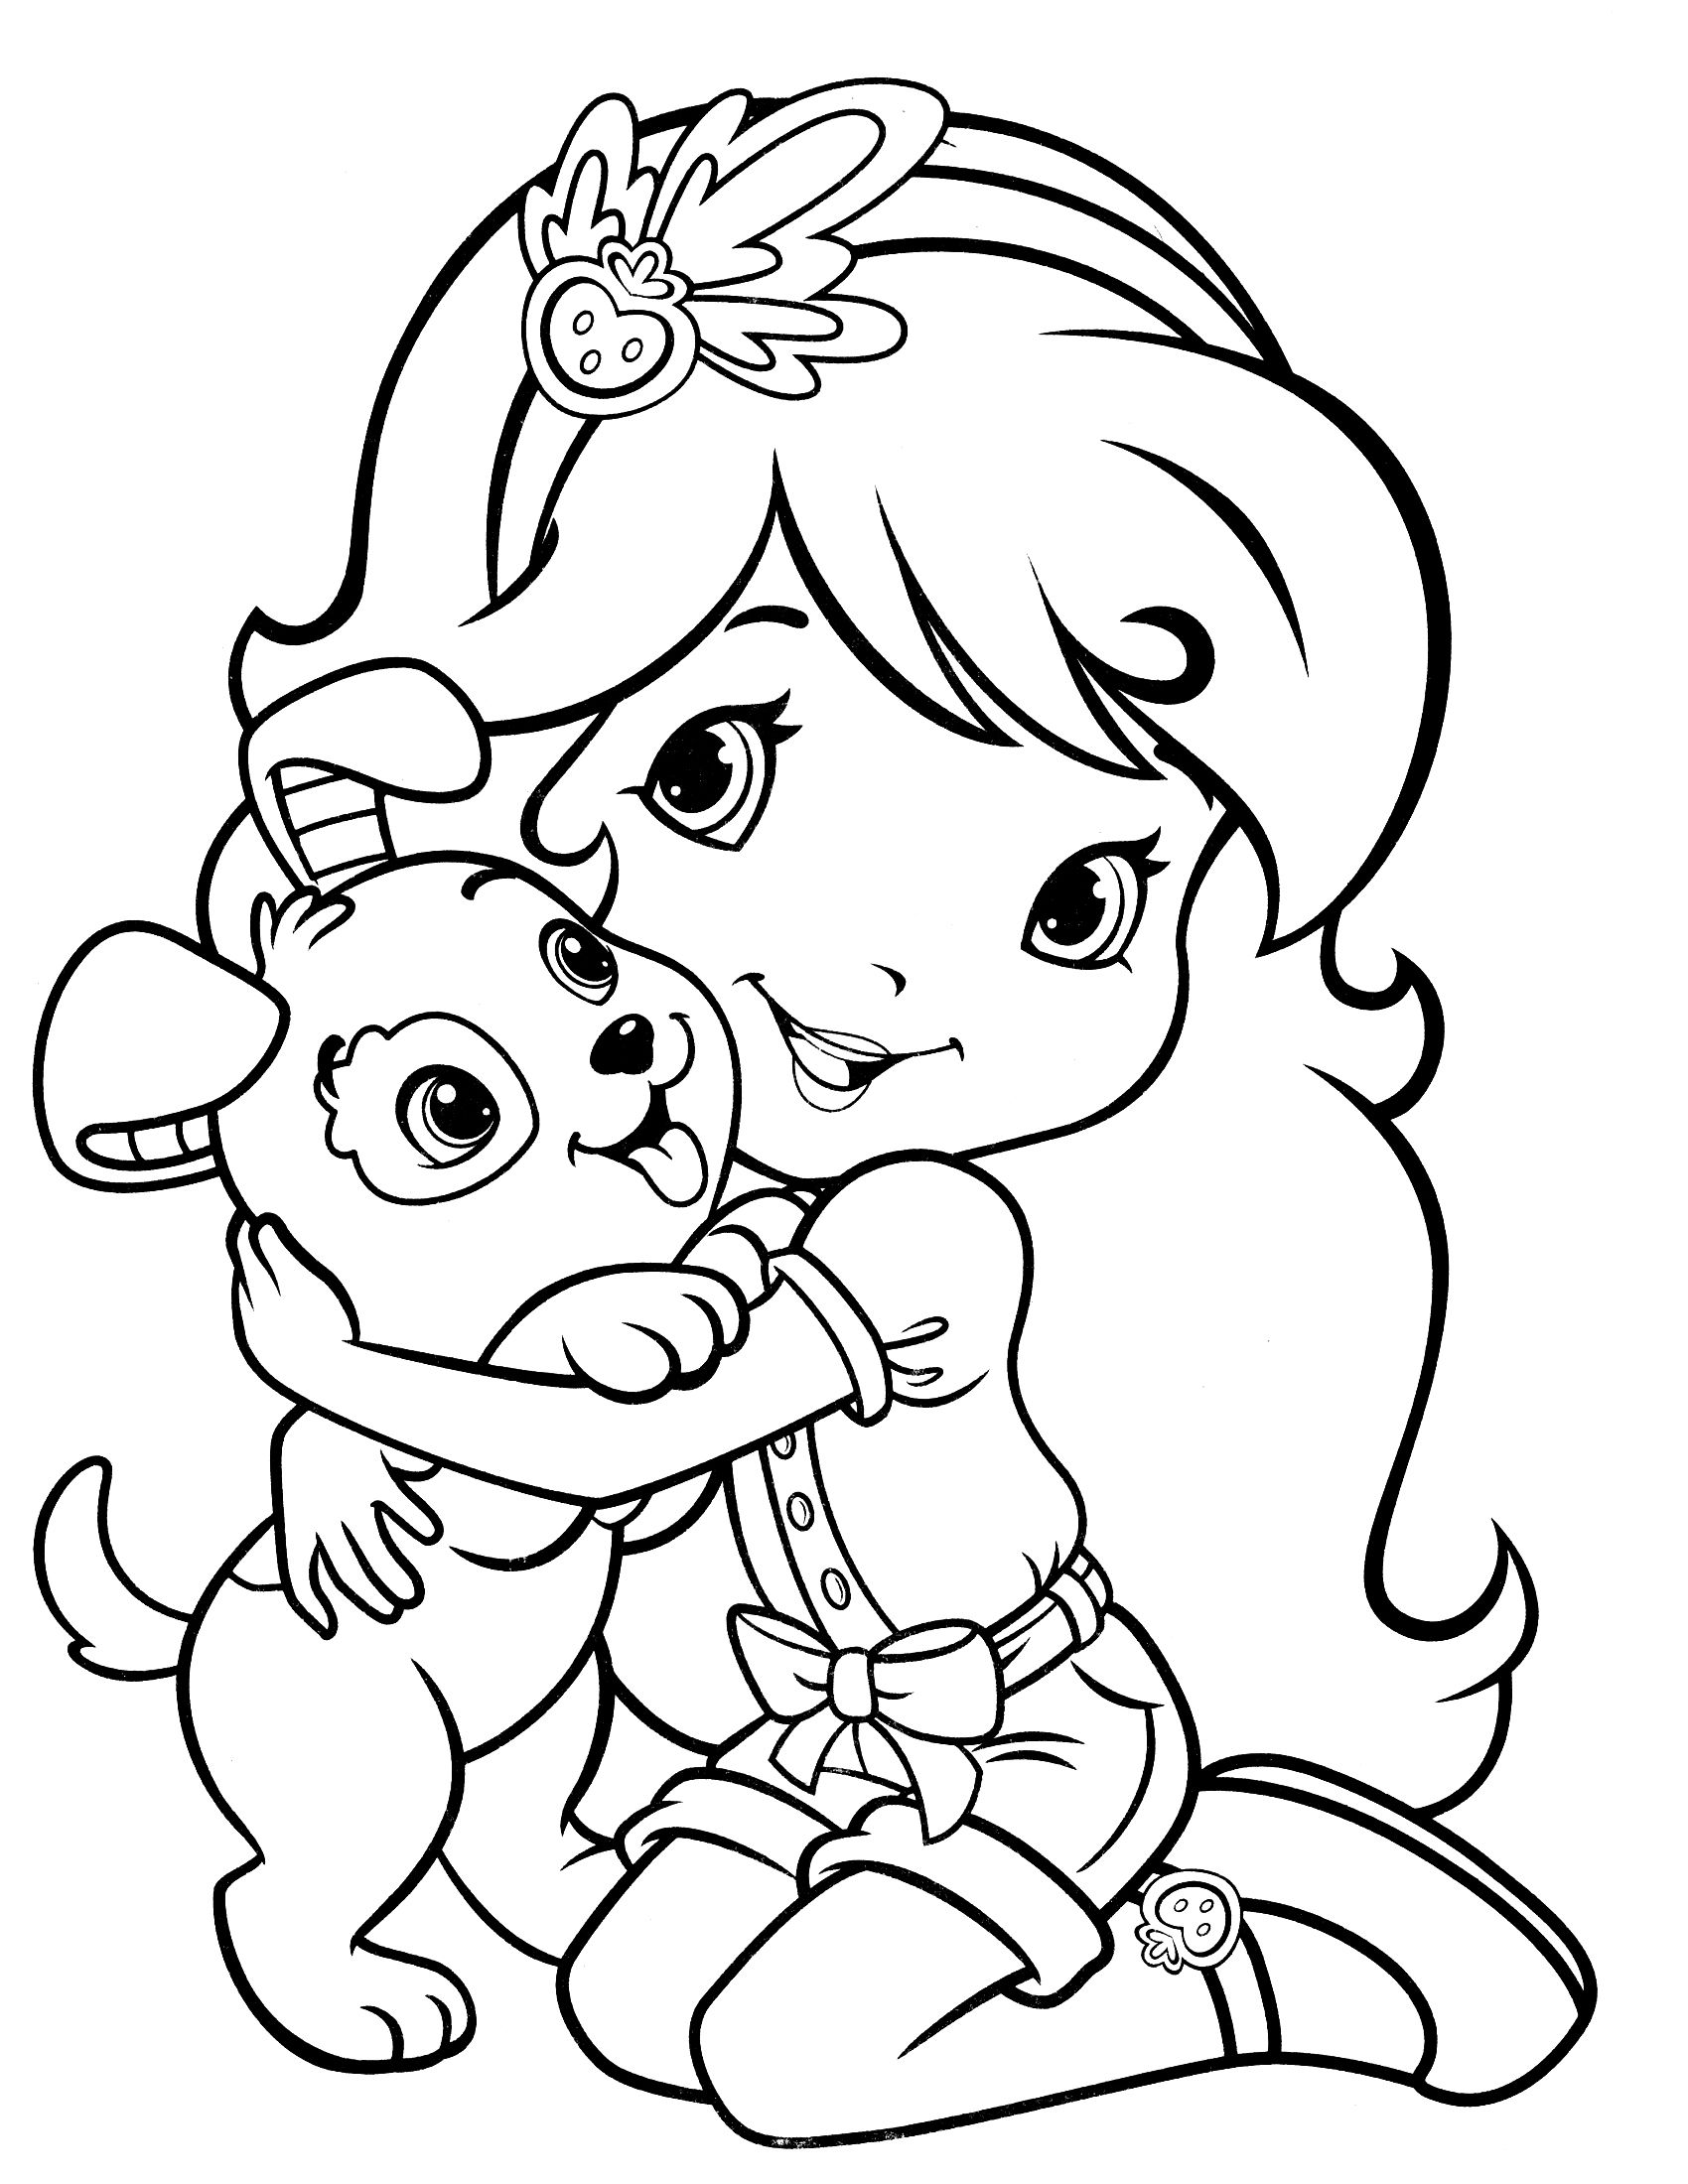 strawberry shortcake coloring pages games coloring pages 2 - Strawberry Shortcake Coloring Pages